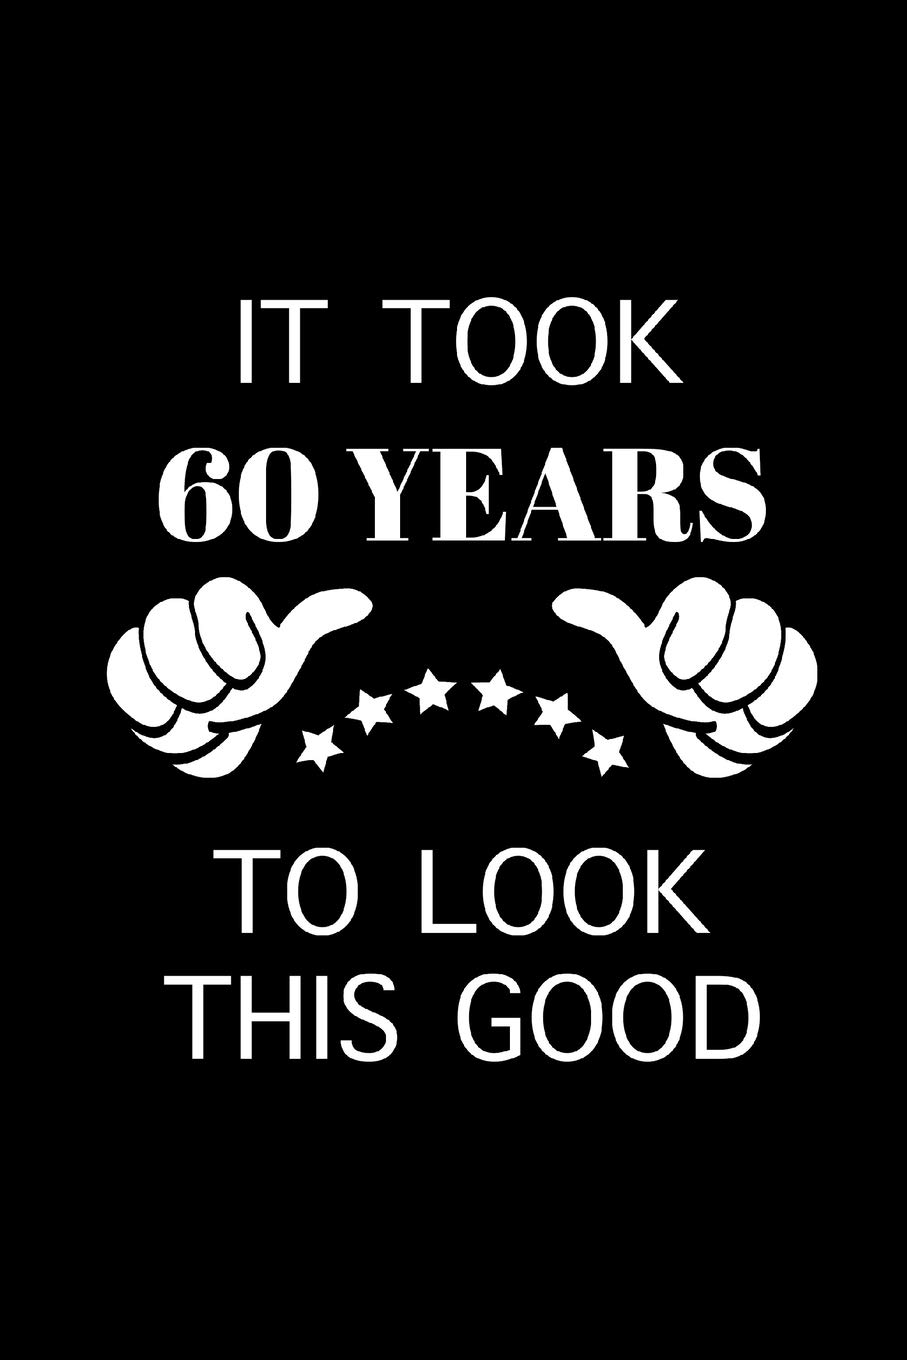 Buy It Took 60 Years Funny 60th Birthday Gift Ideas Gag Gifts For Him Hilarious Gifts For Coworkers Blank Lined Diary To Write In Book Online At Low Prices In India